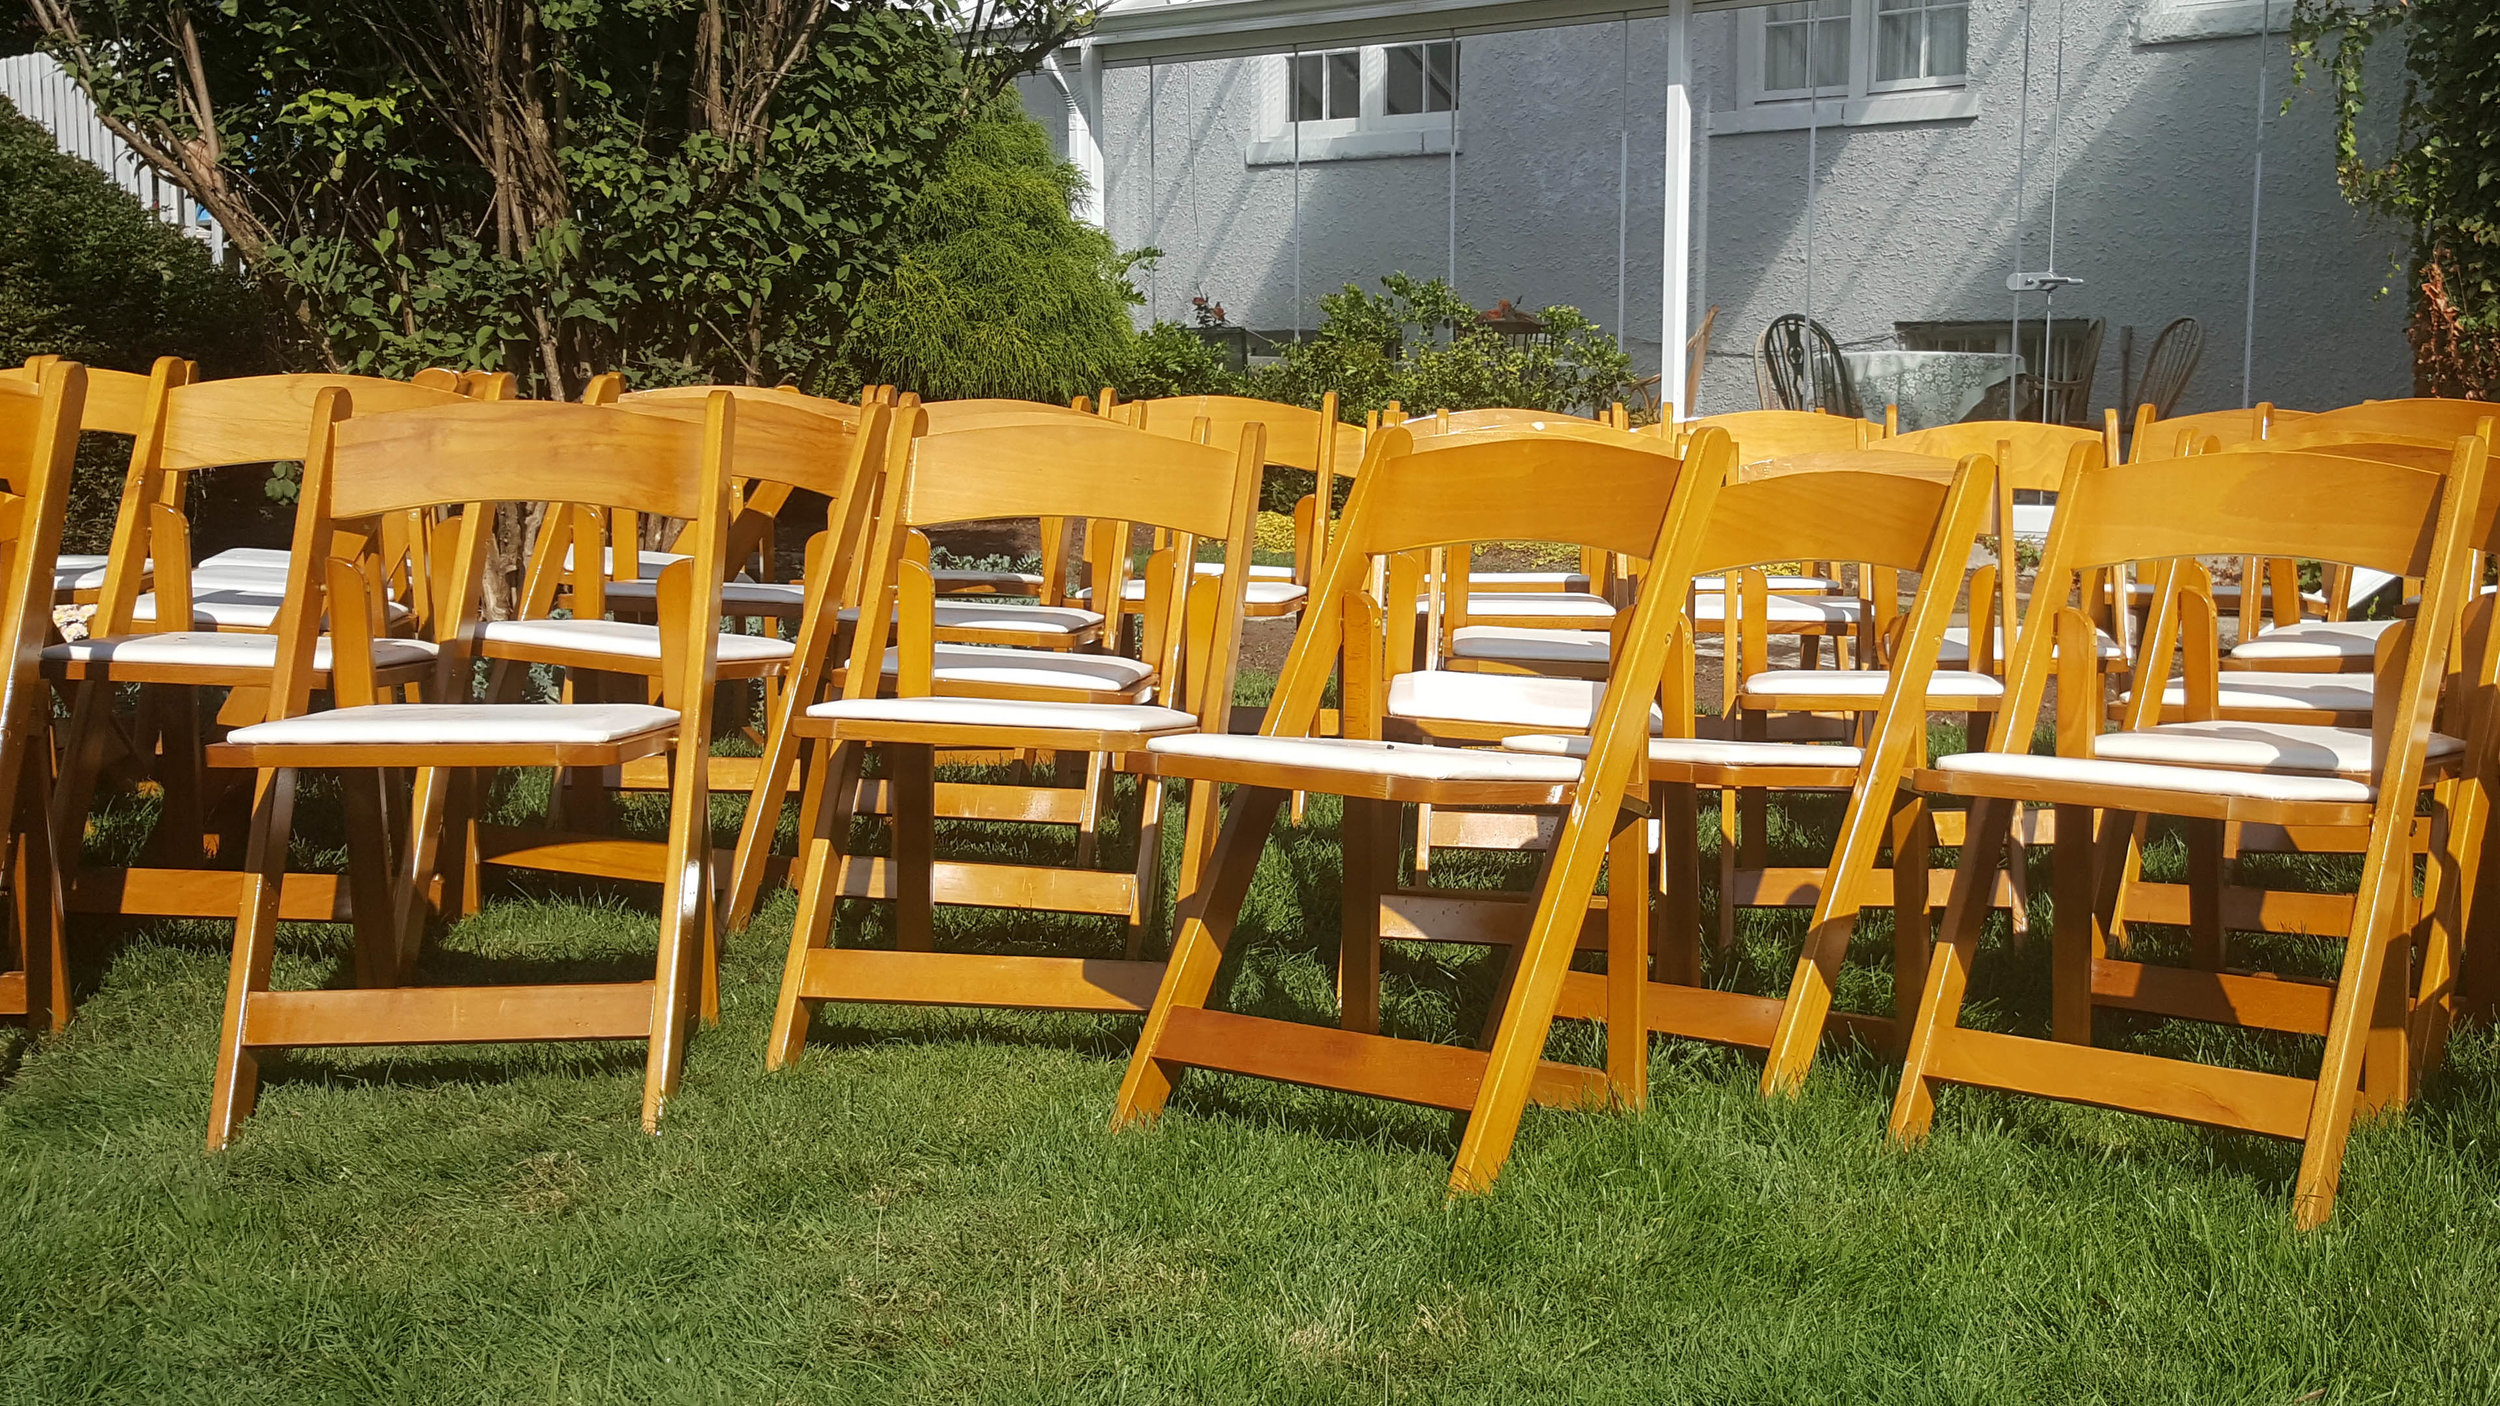 Folding Chairs - Service Type: RentalFinish: Natural glossPadding: White cushionMaterial: Wood